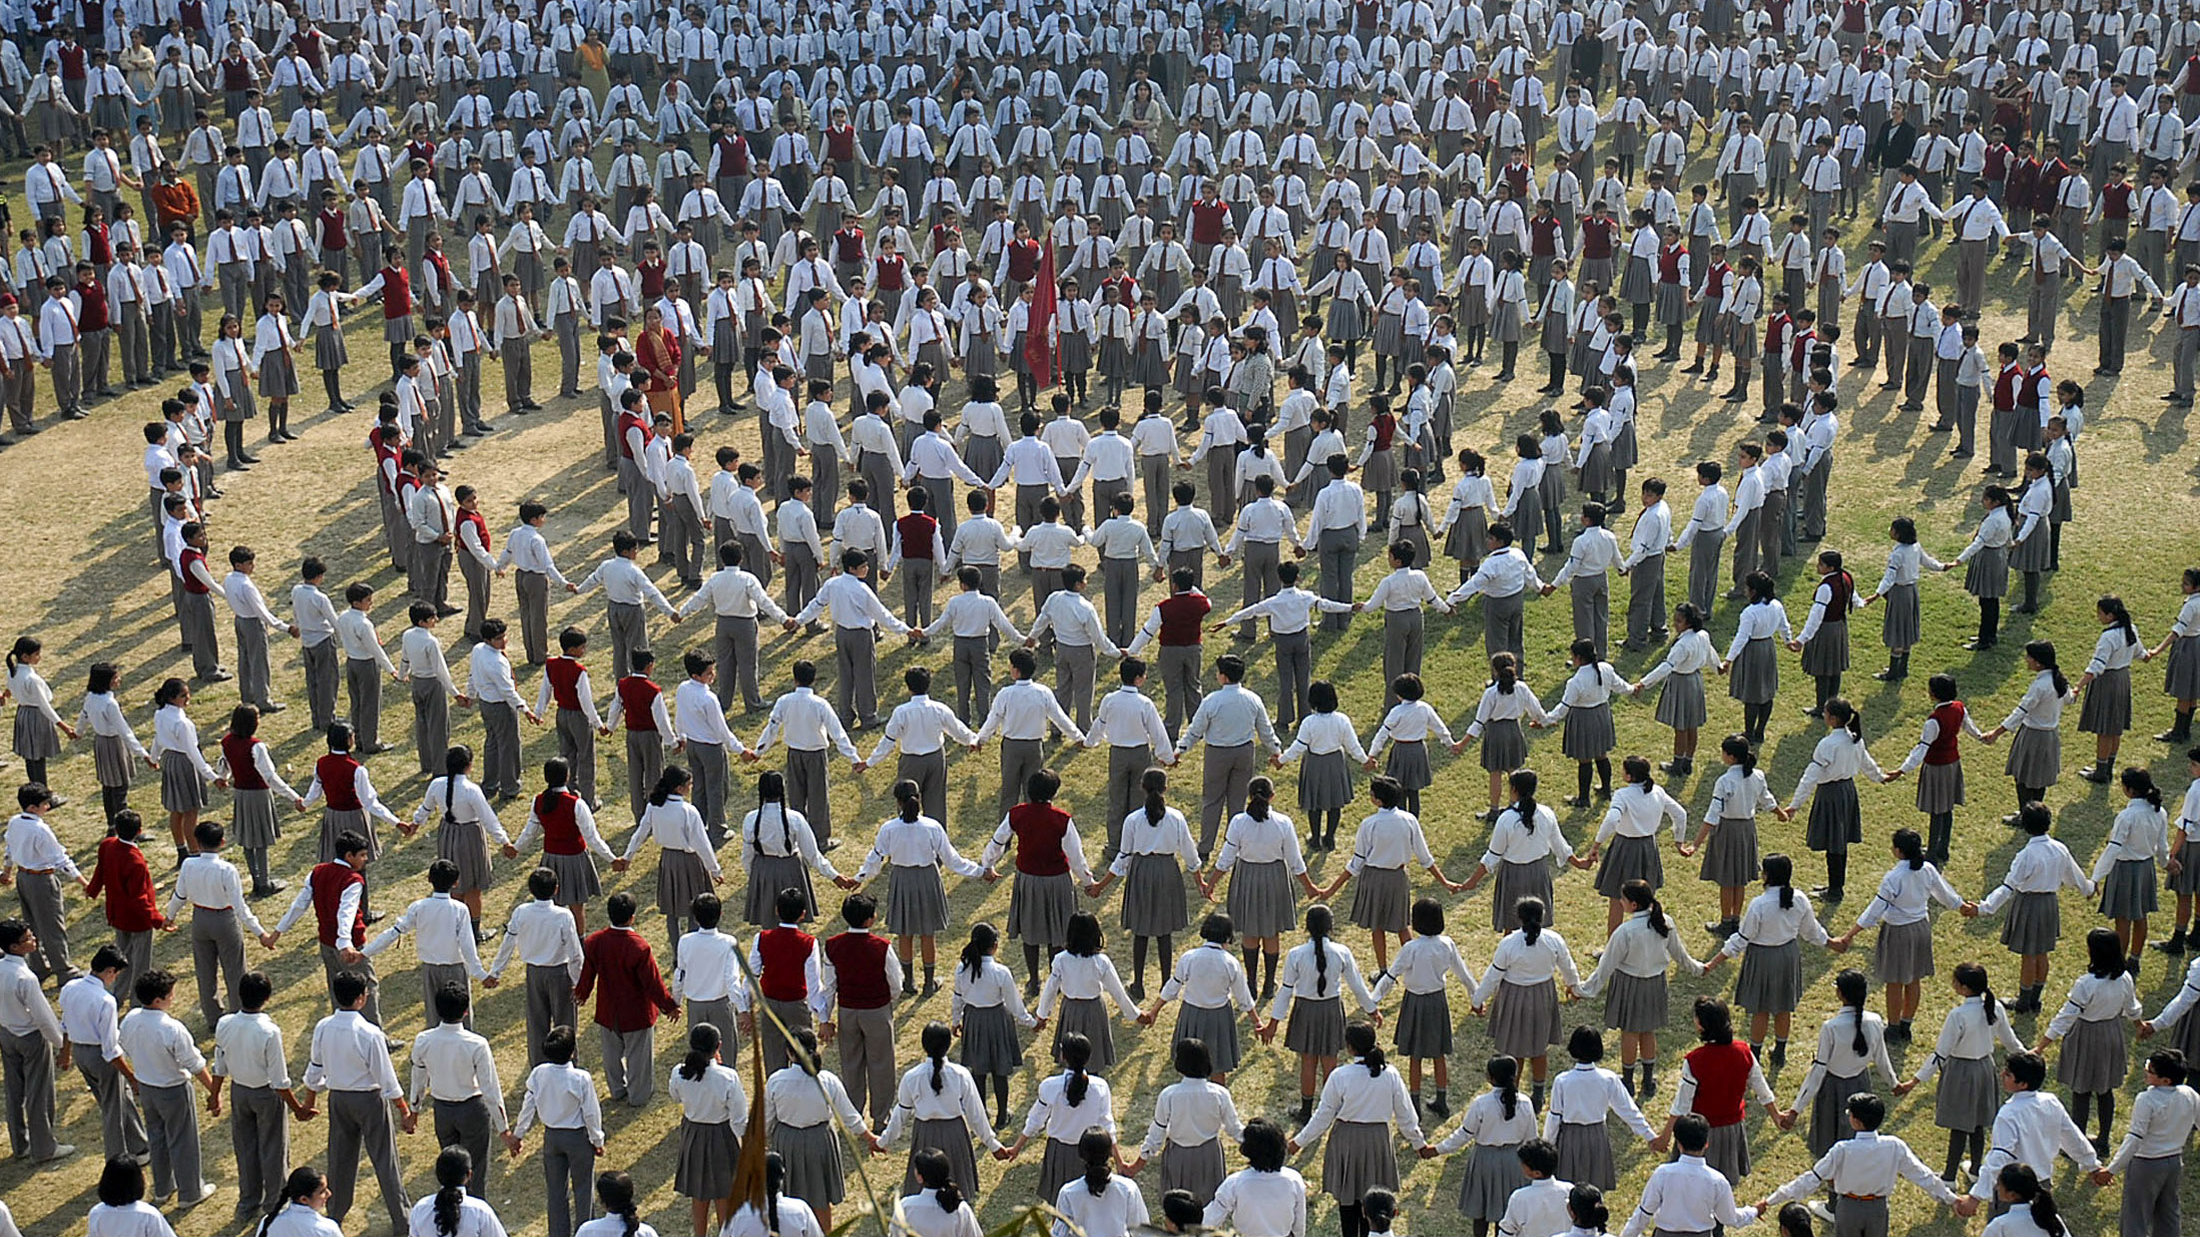 Students and teachers make a human chain inside the premises of their school to pay homage to the victims of Mumbai's recent attacks, in the northern Indian city of Lucknow December 5, 2008. Several attackers may have survived the three-day siege of Mumbai that killed 171 people last week, analysts said.